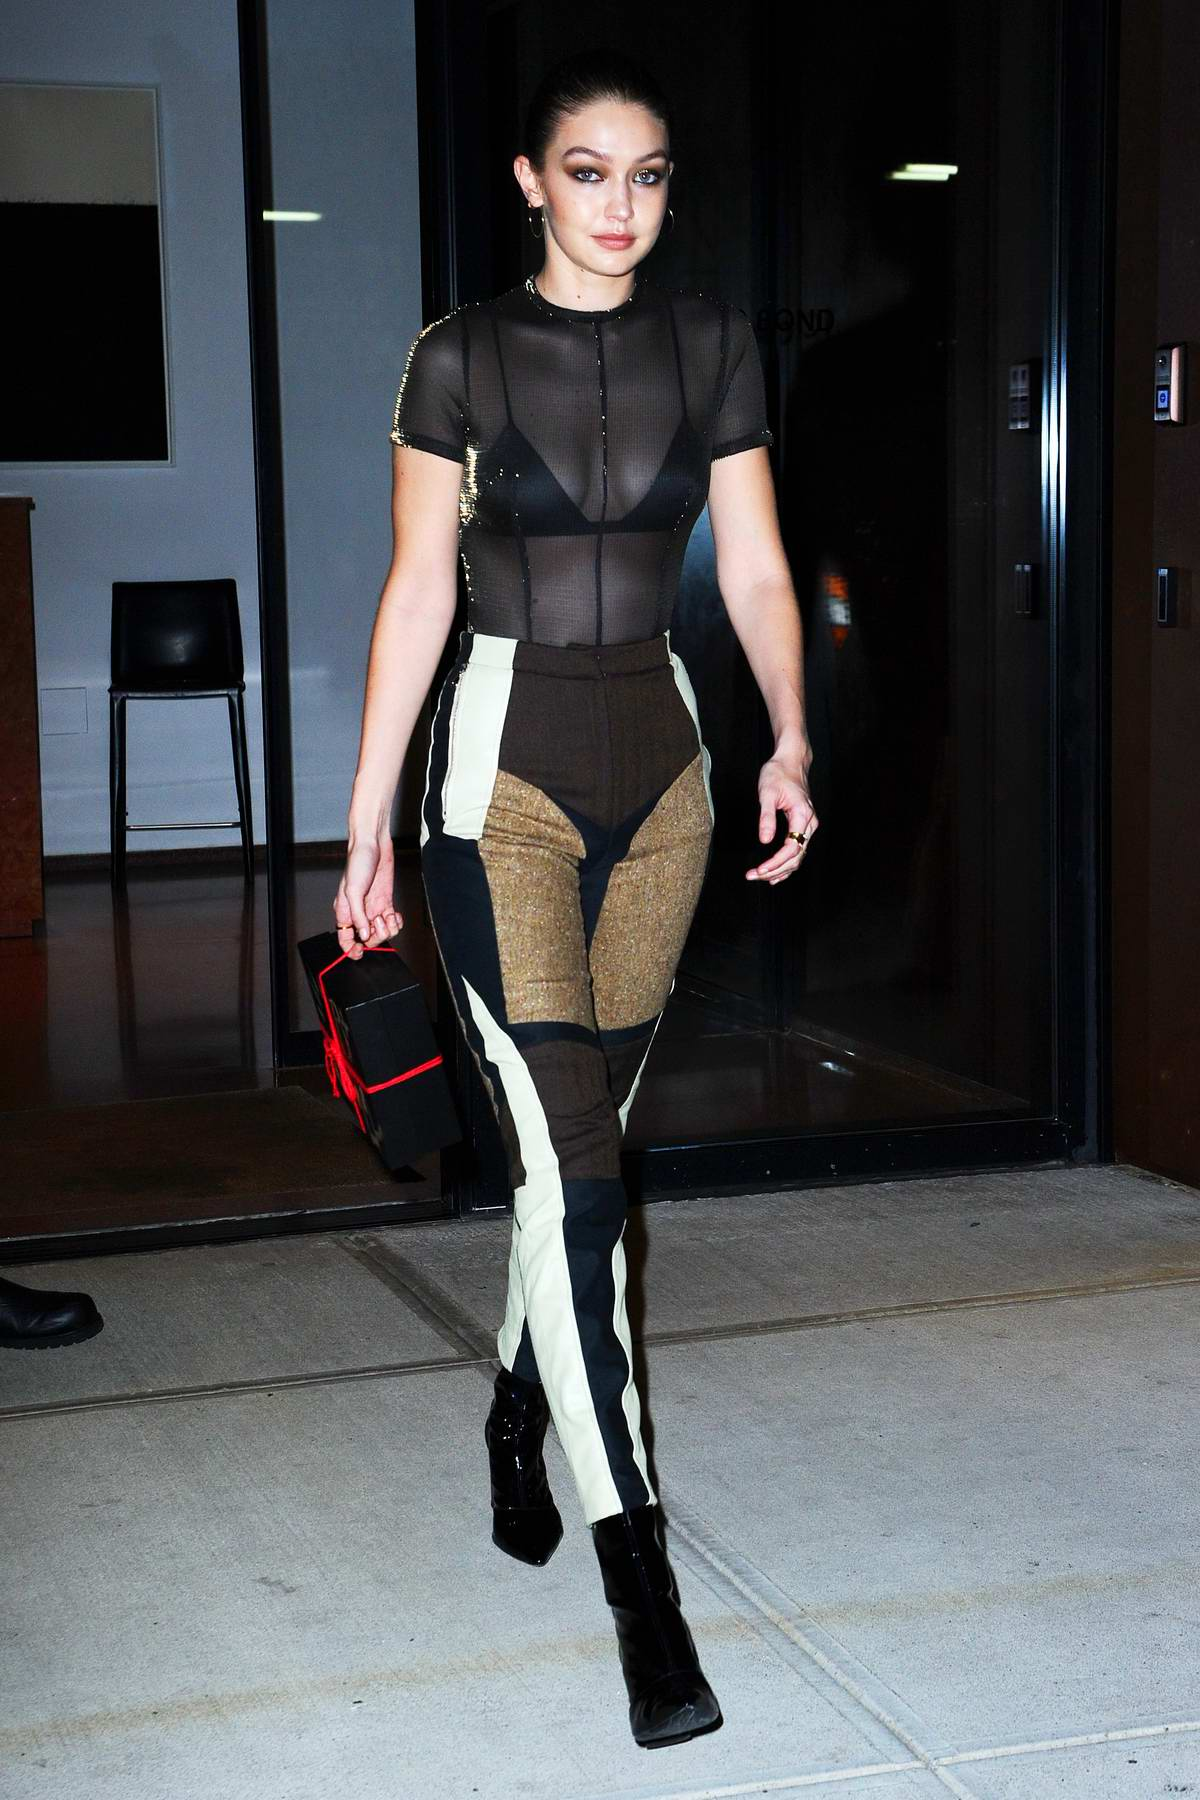 Gigi Hadid wears a black sheer top and patched pants as she heads to Bella Hadid's birthday party in New York City